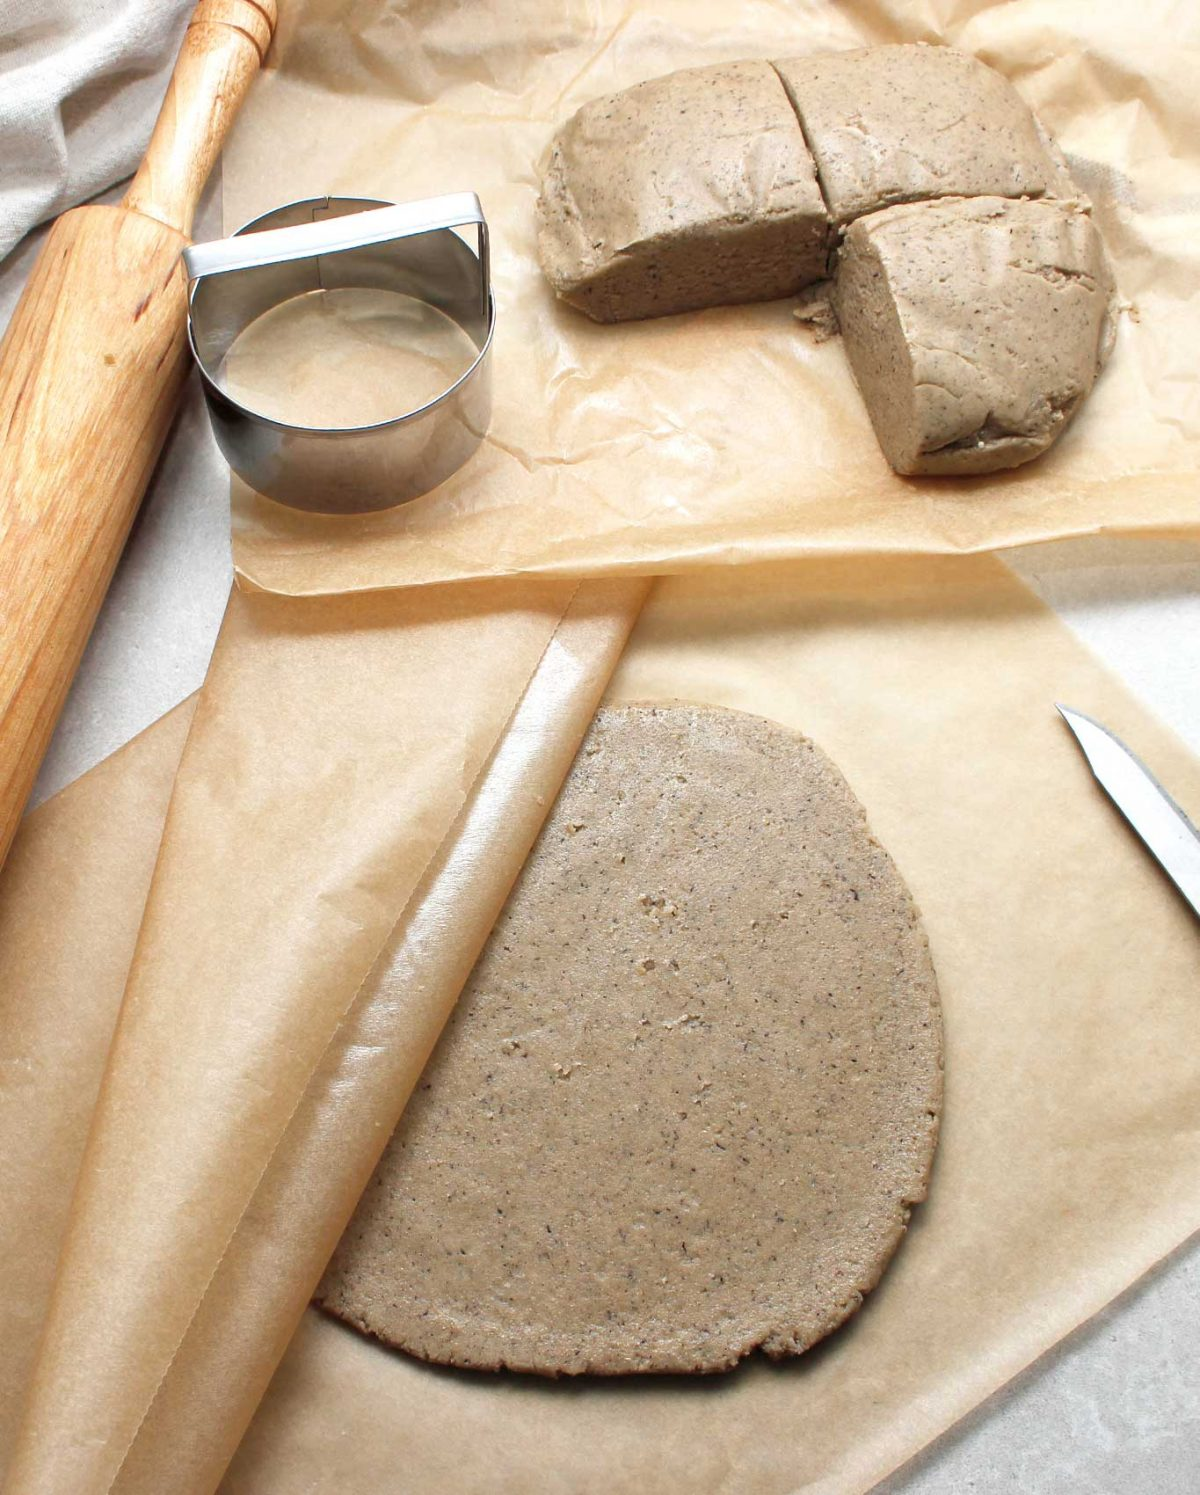 Rolled out GF dough to make cookies